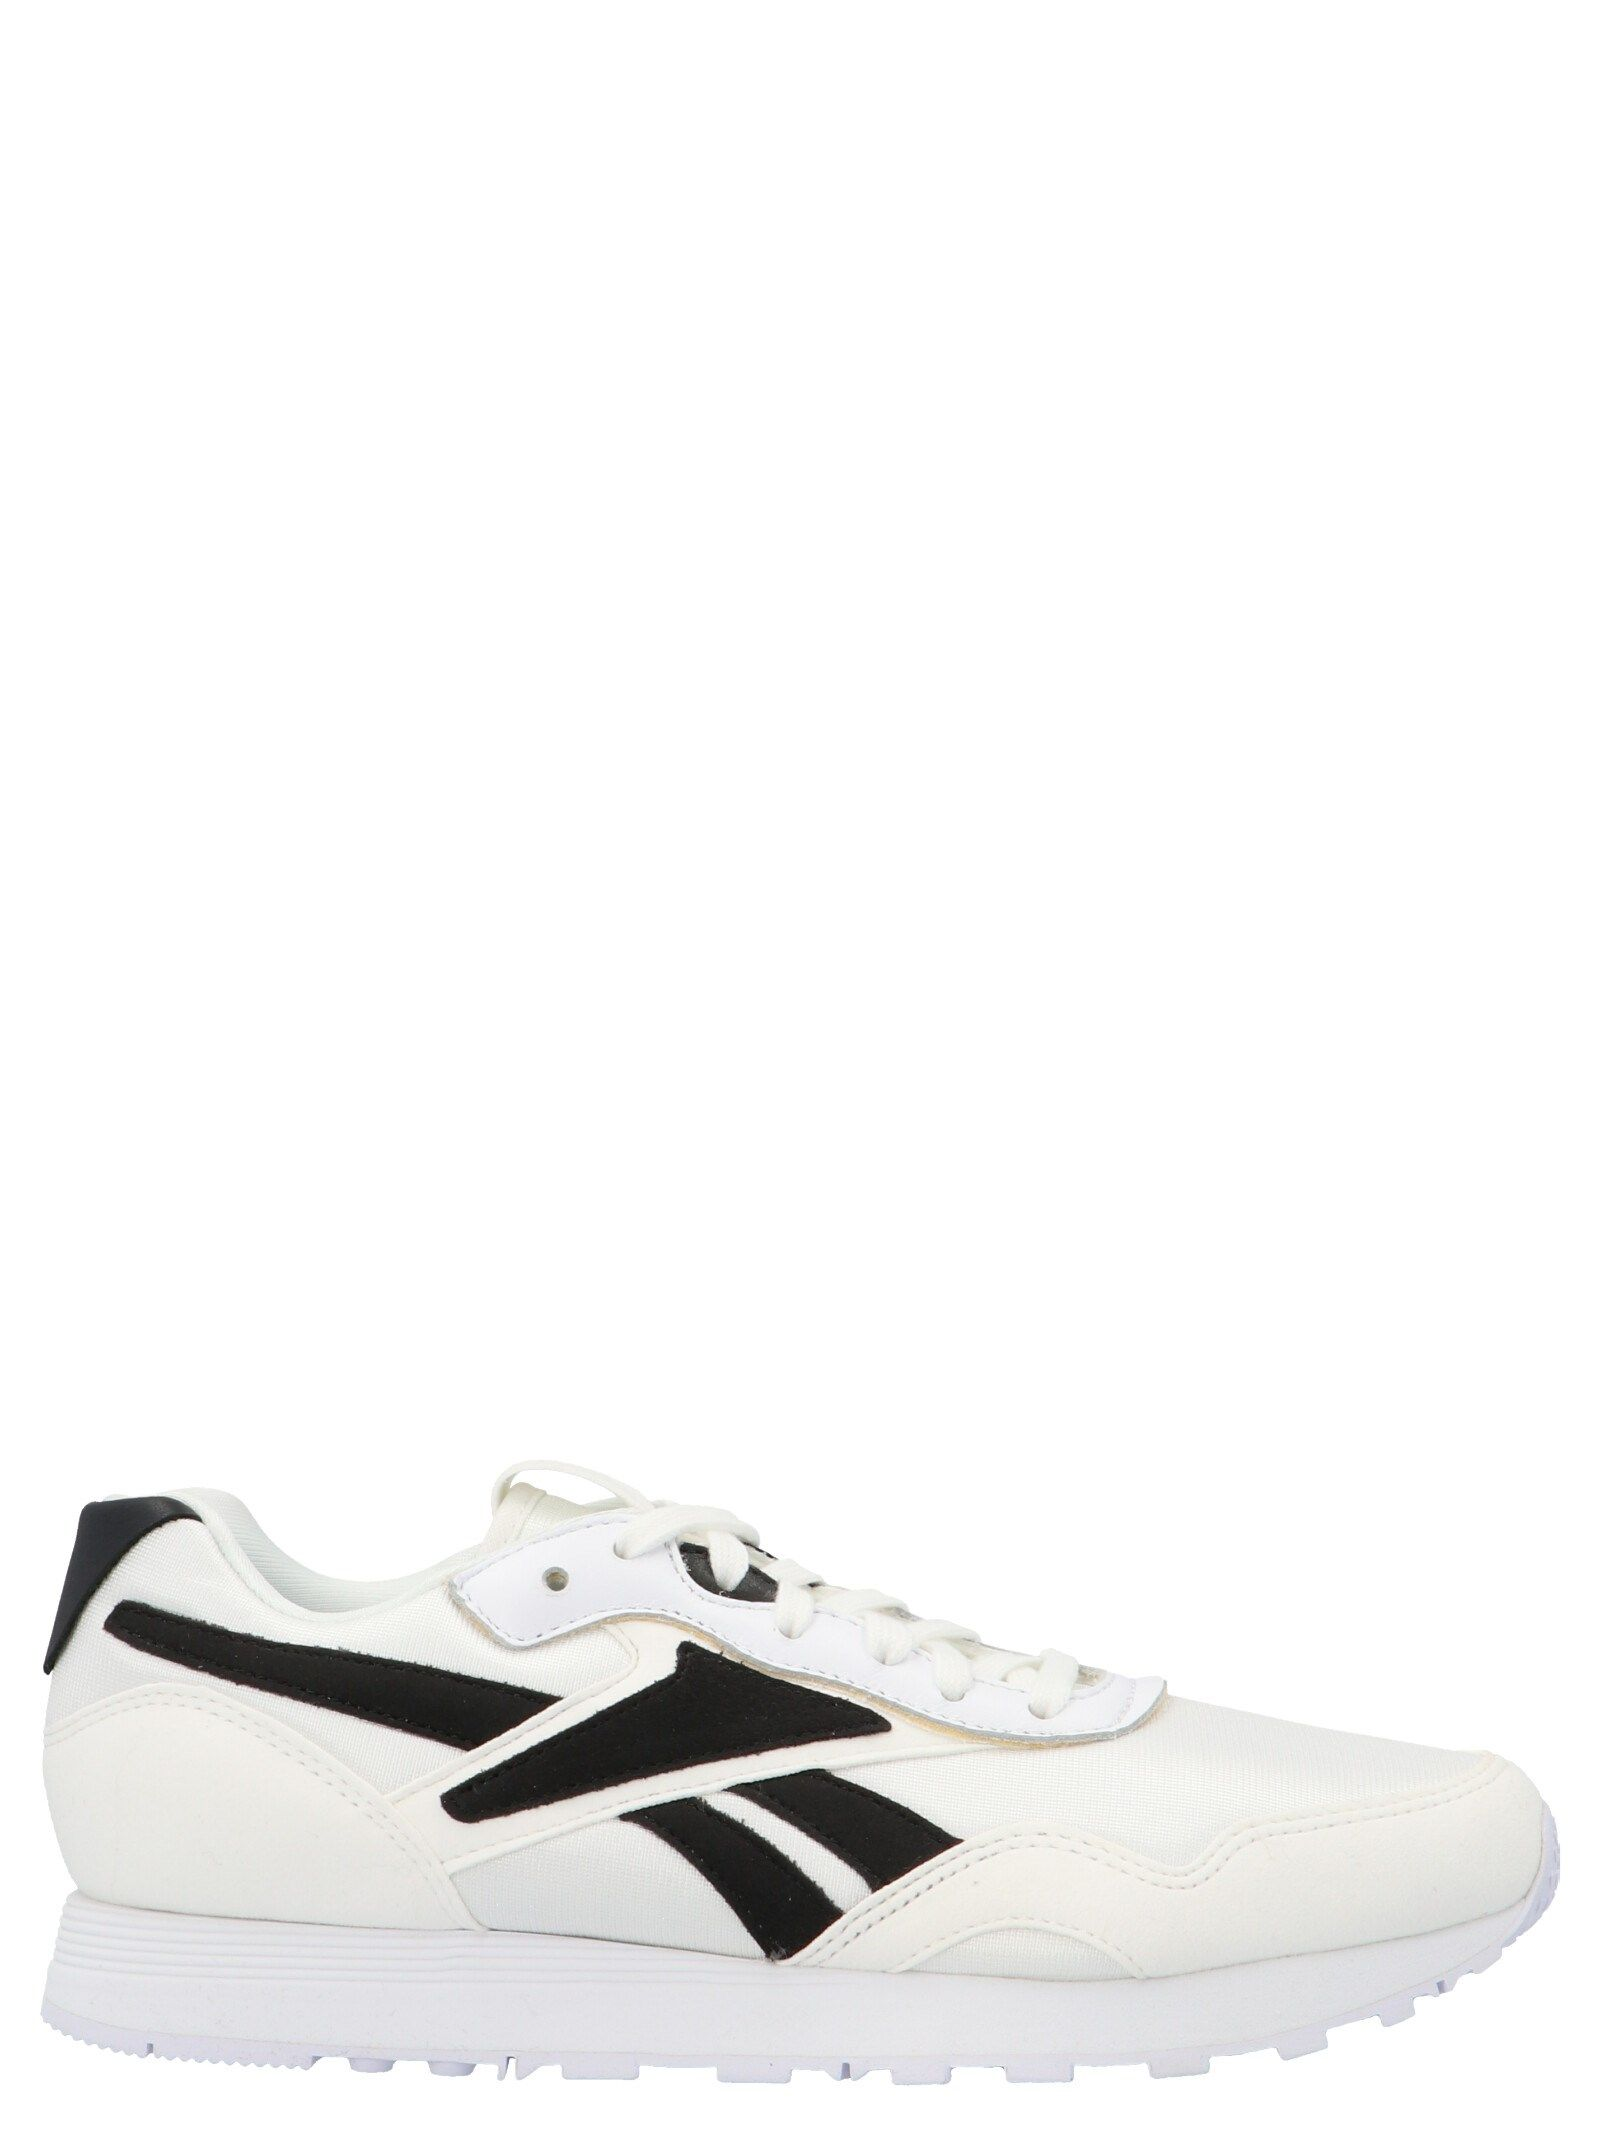 Reebok REEBOK WOMEN'S WHITE OTHER MATERIALS SNEAKERS